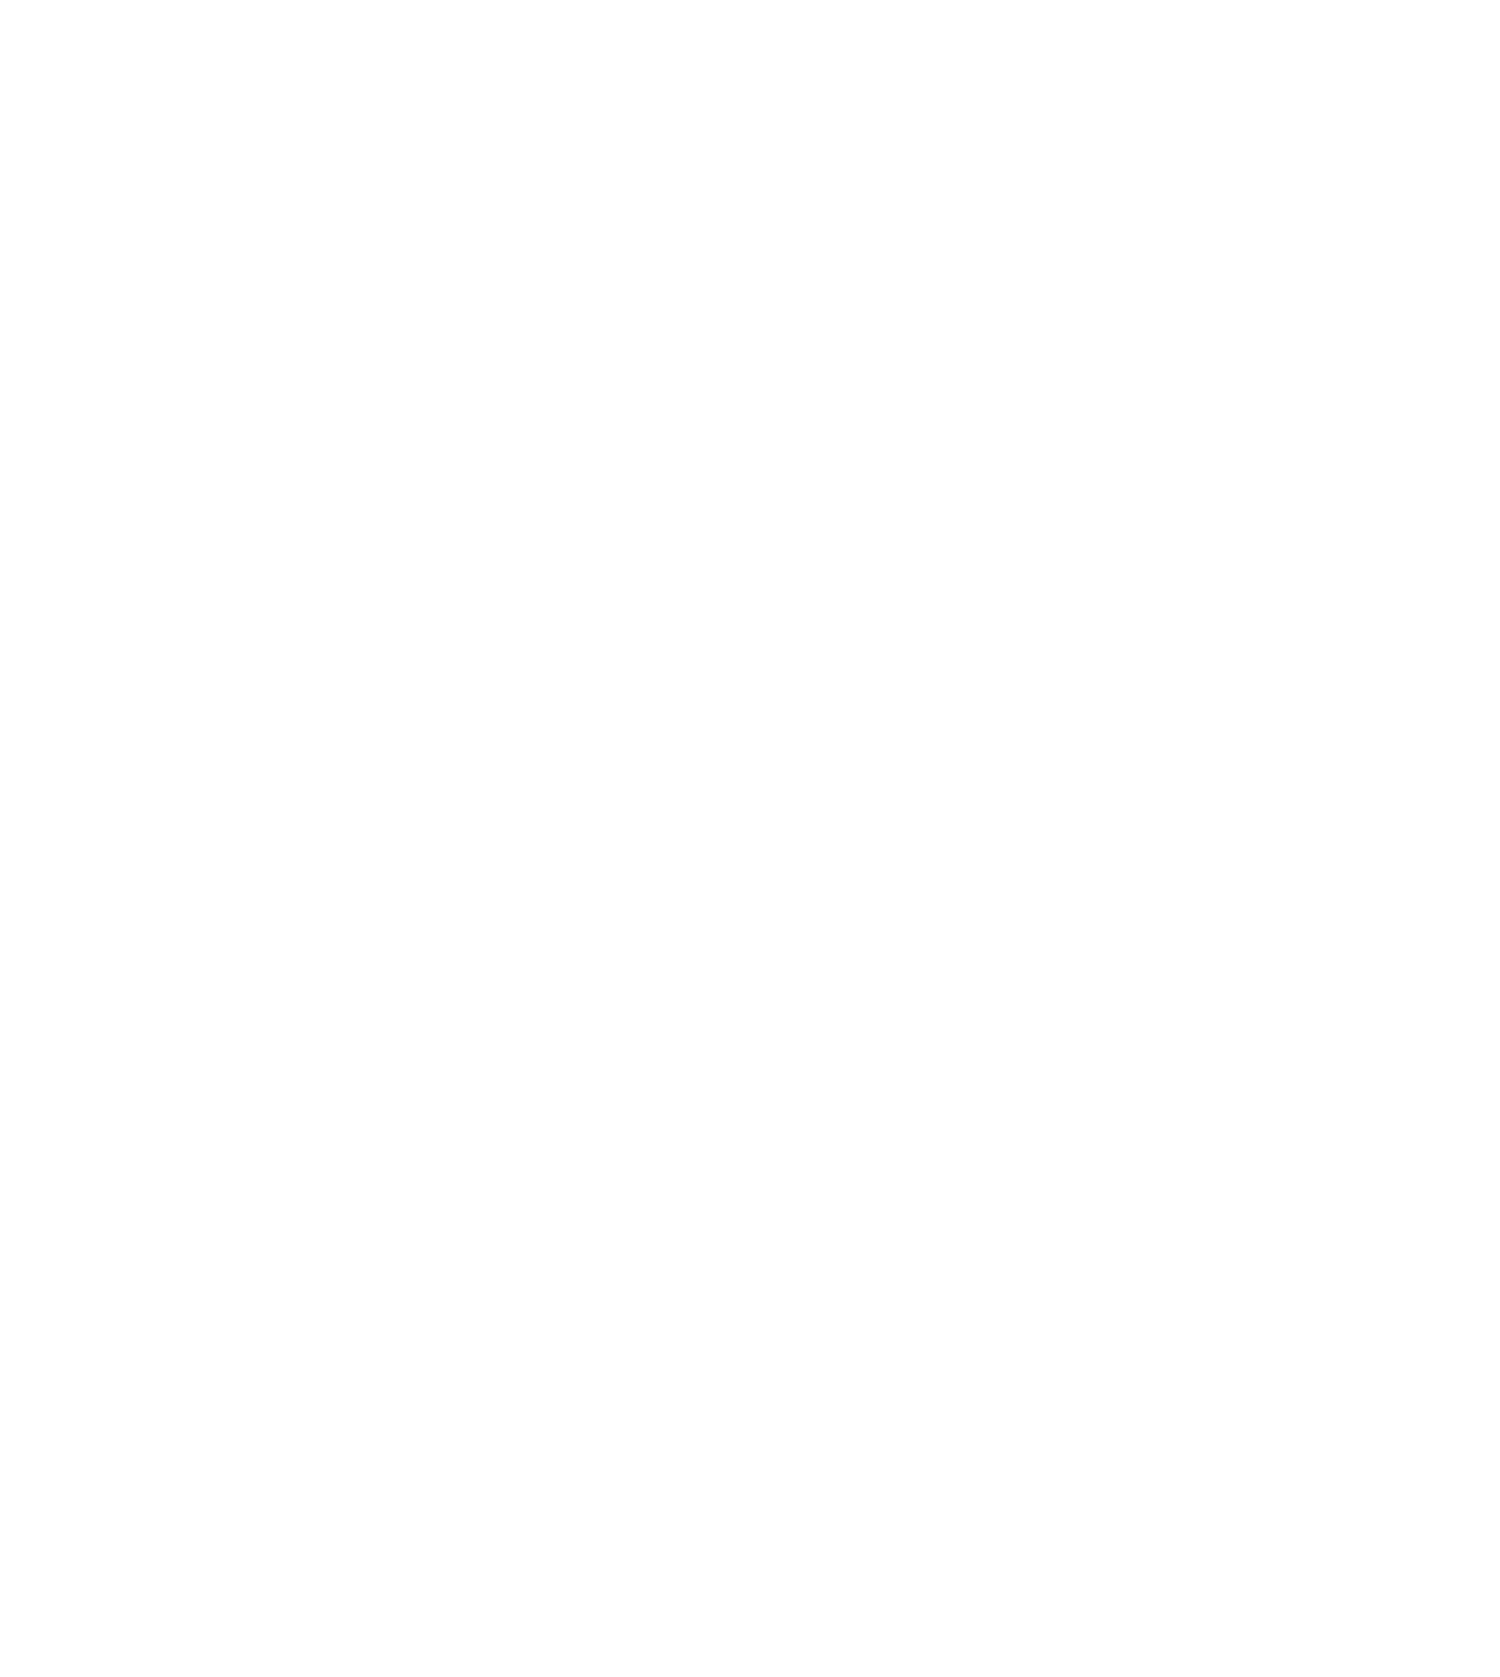 The Frisco Barroom